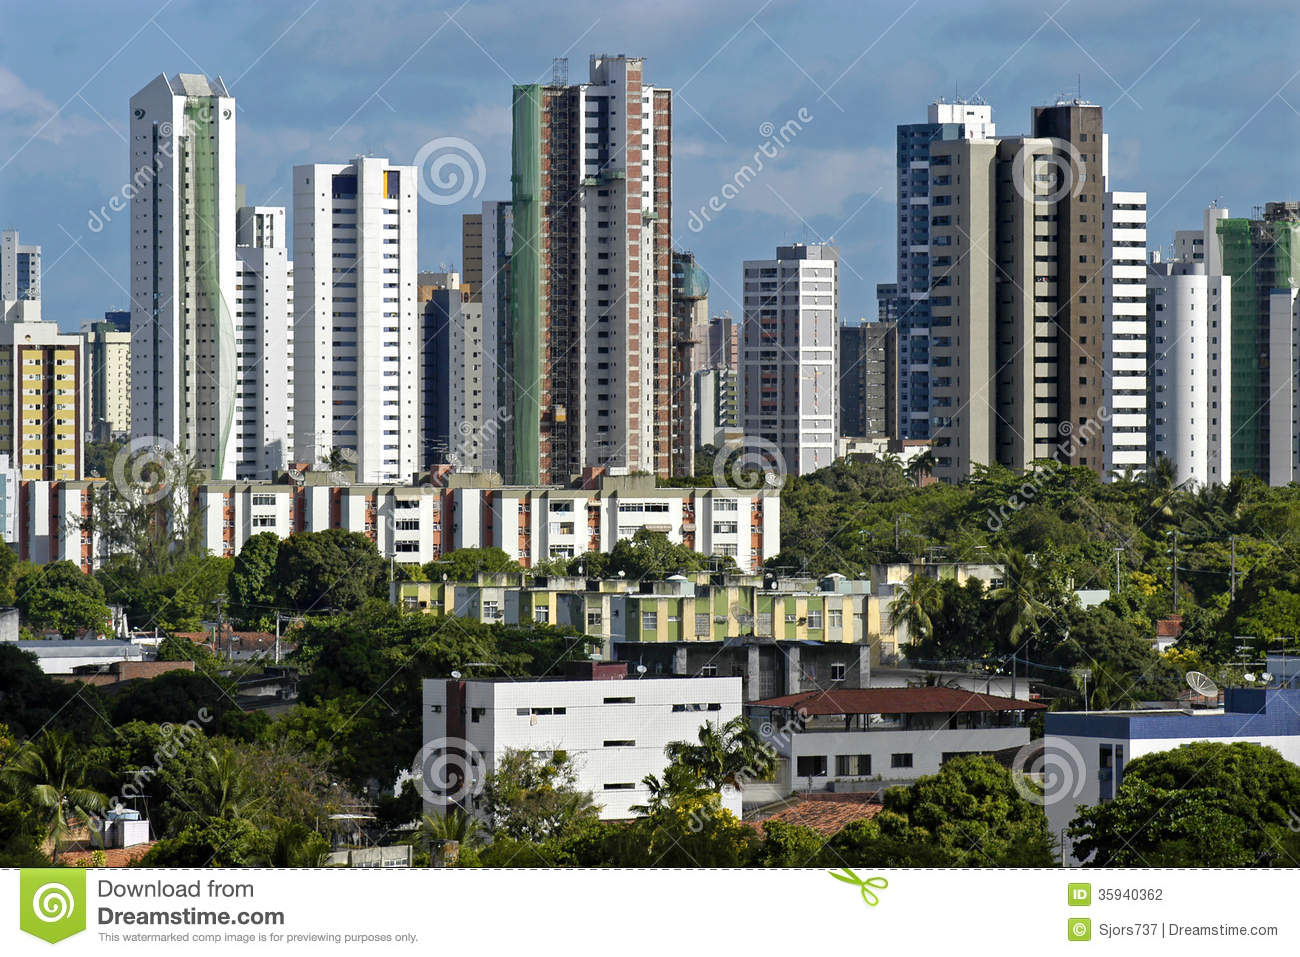 Brazilian Houses Skyline Of Skyscrapers And Low Rise Houses Brazil Stock